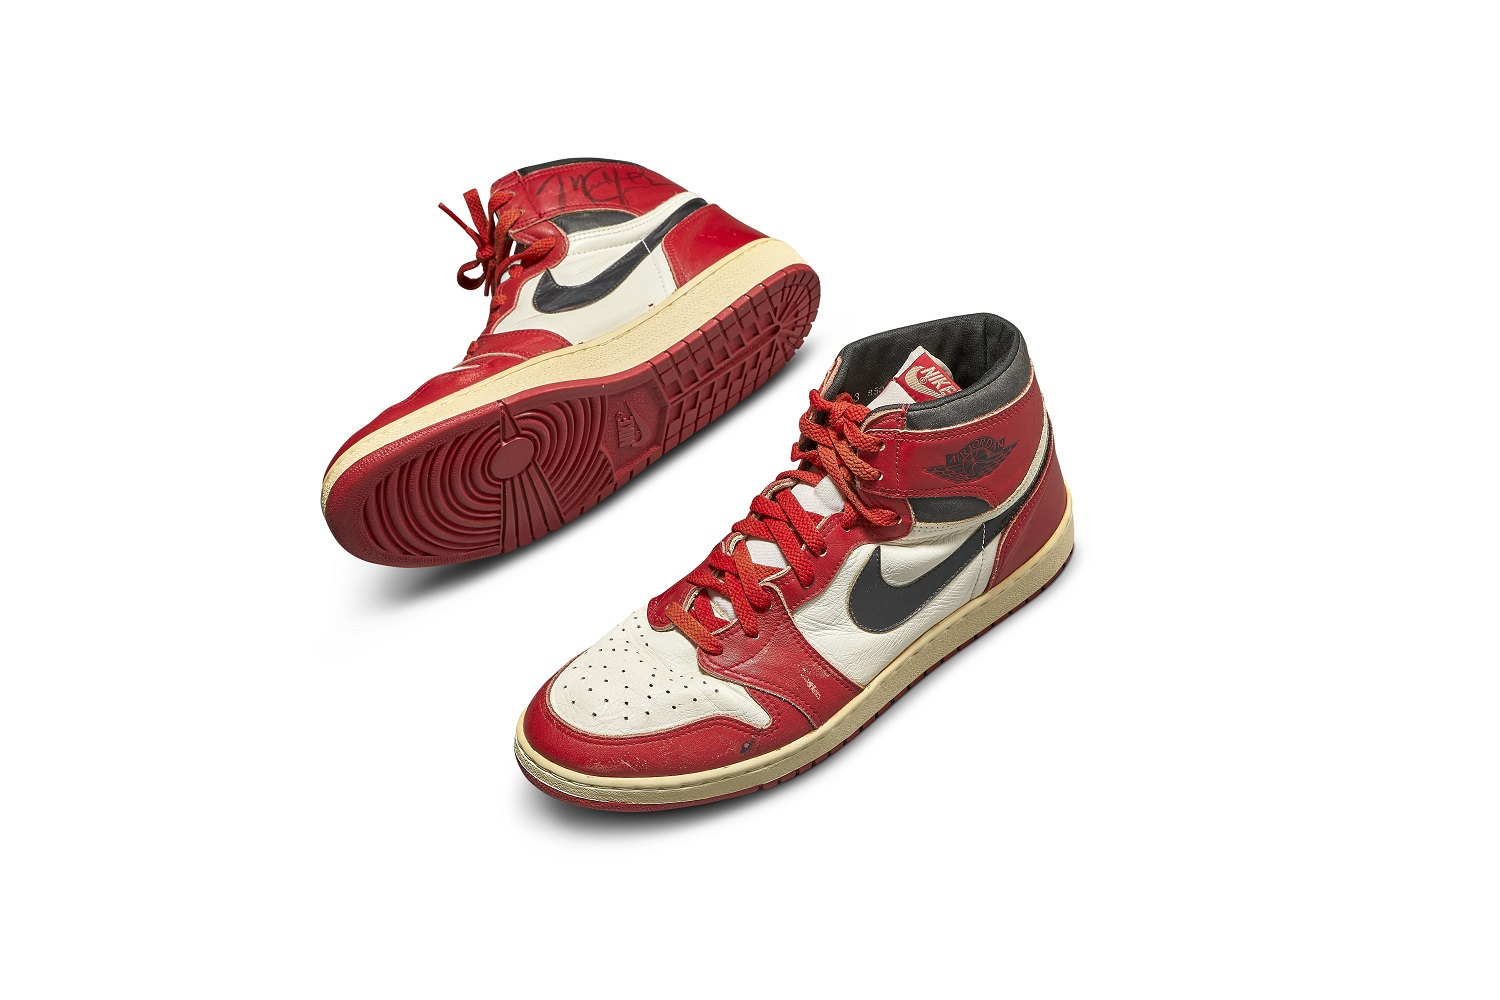 Sotheby's Record: $560,000 Michael Jordan's Game-Worn Air Jordan 1s